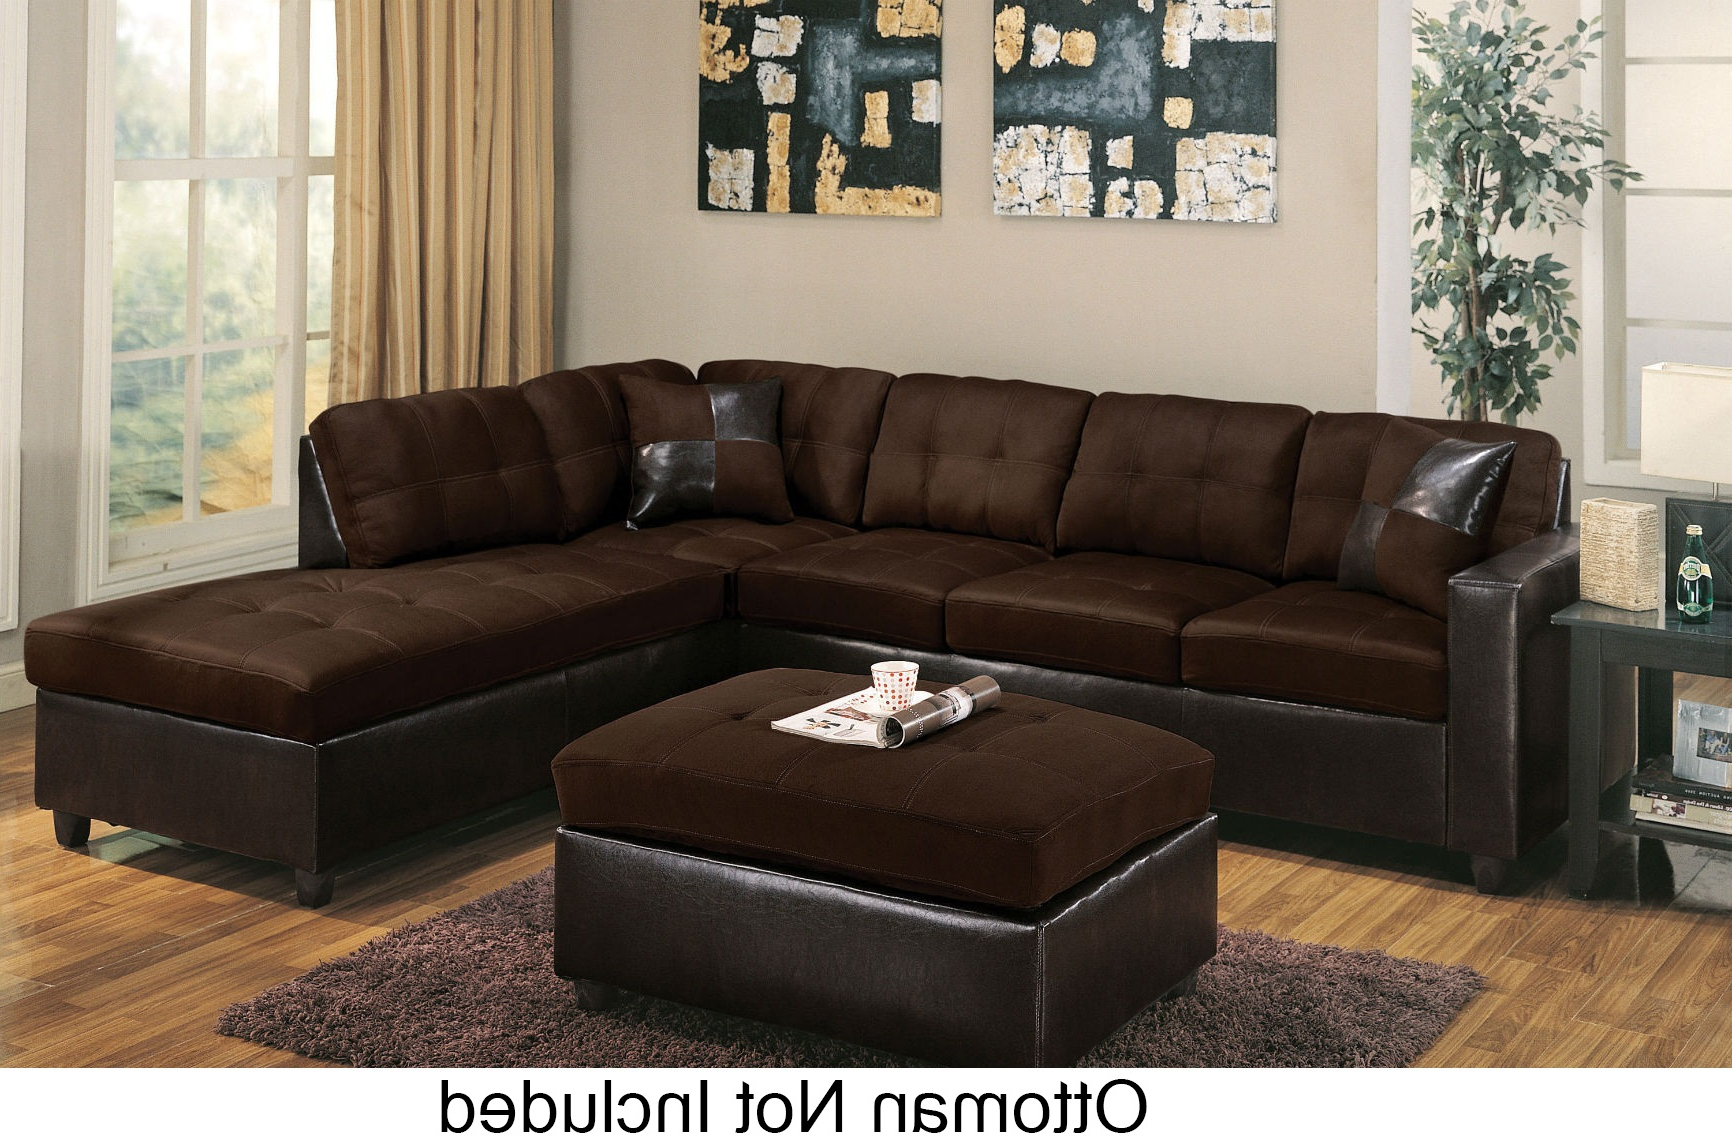 Clifton Reversible Sectional Sofas With Pillows In Most Popular Milano 51325 Reversible Sectional With Chaise 3 Seater (View 3 of 20)